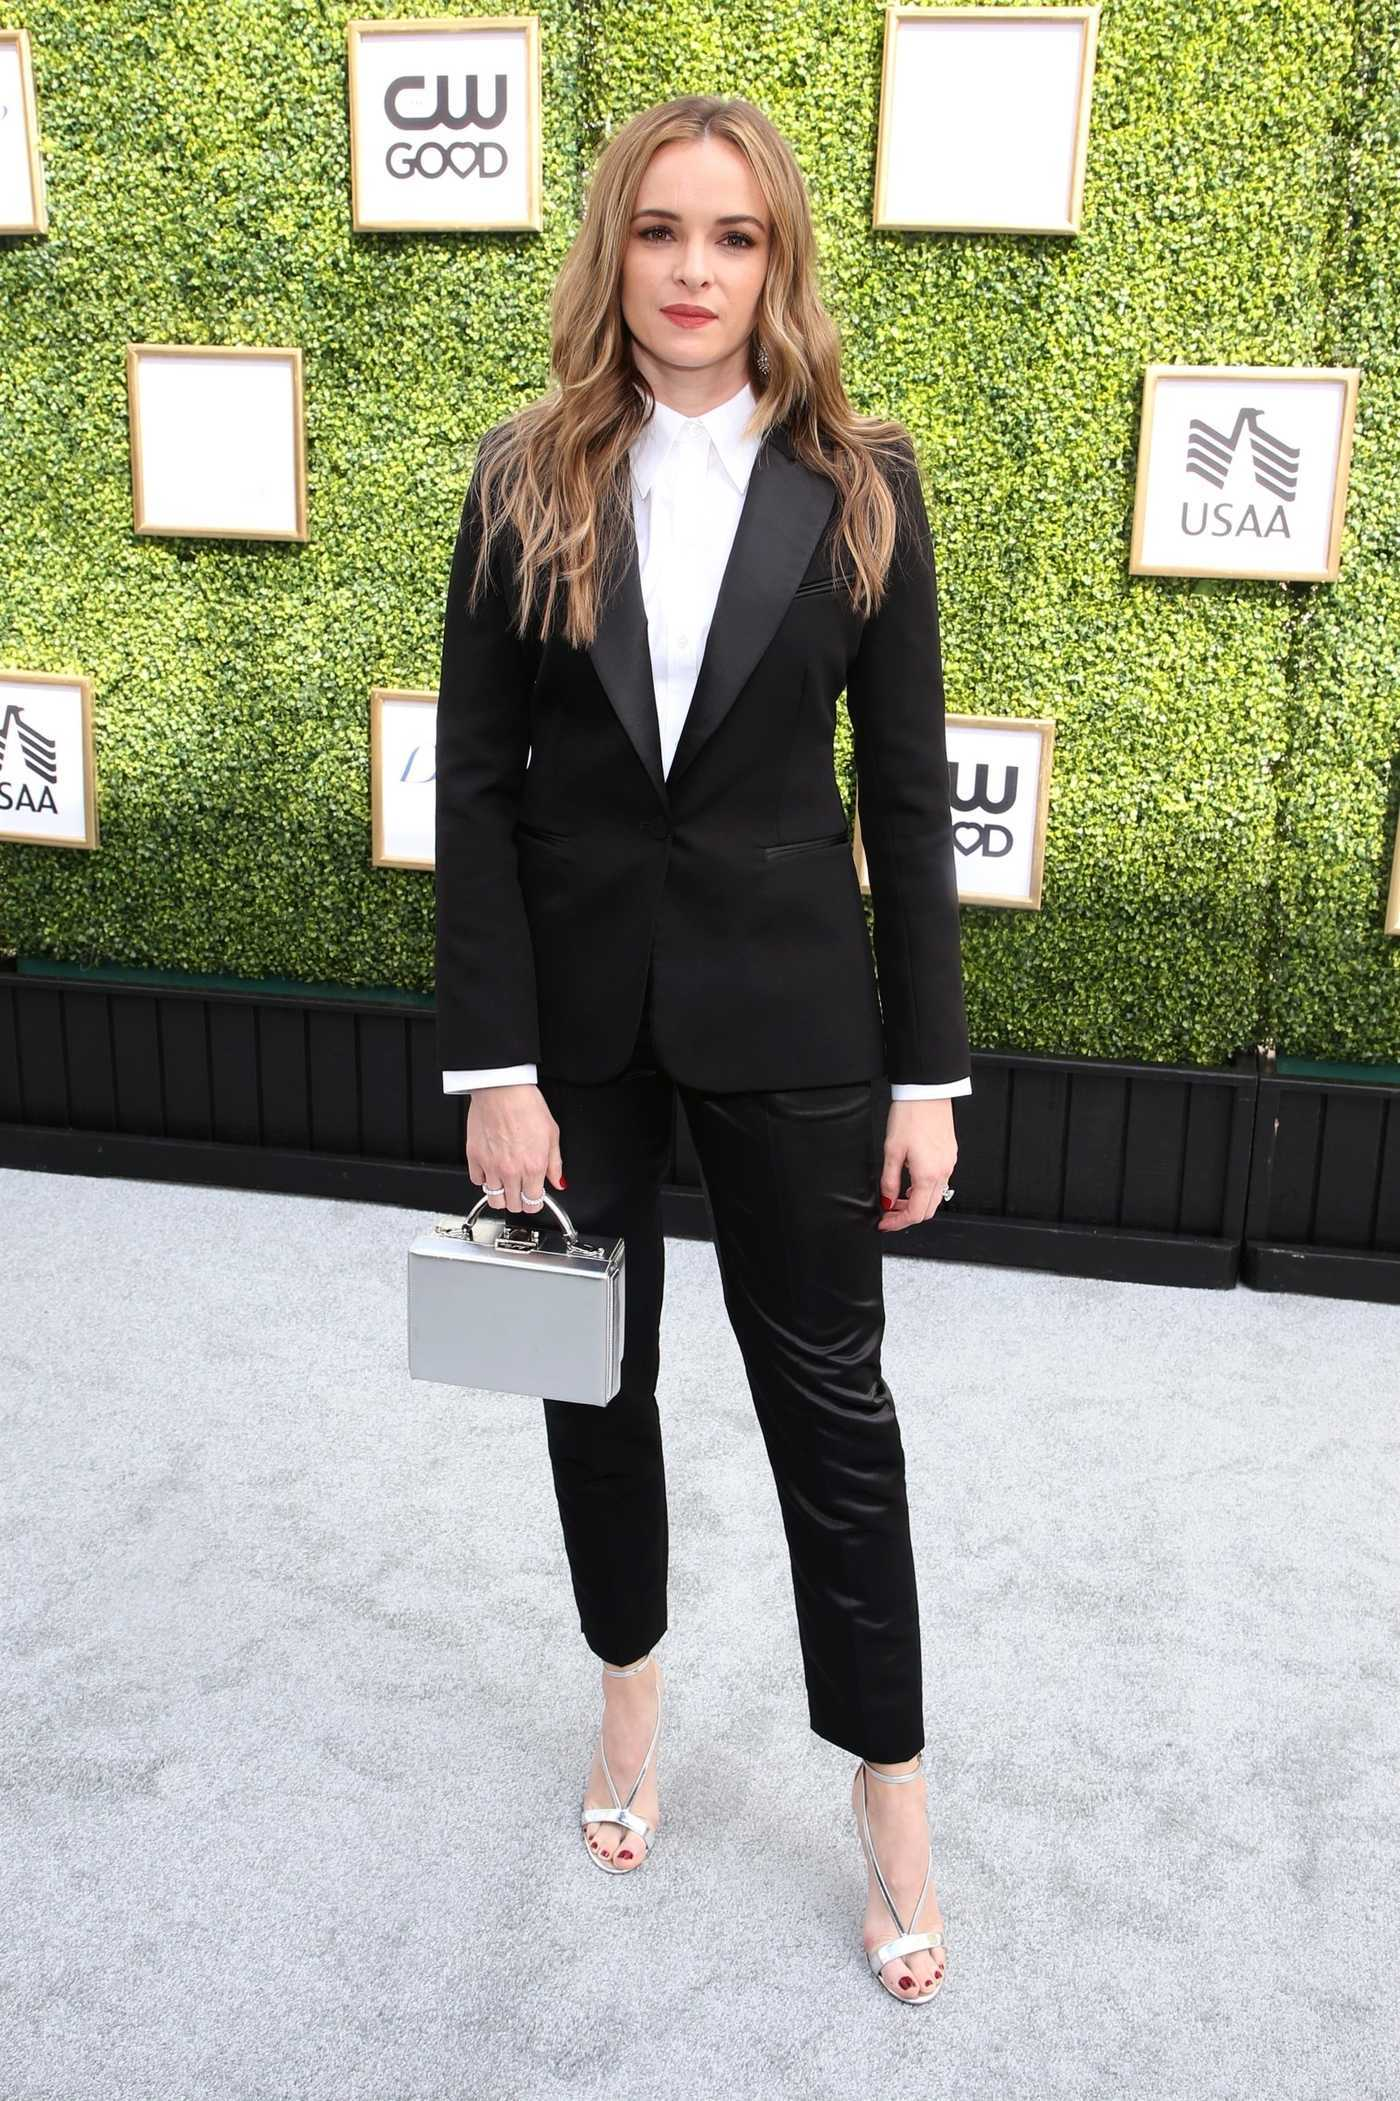 Danielle Panabaker Attends the CW Networks Fall Launch Event in LA 10/14/2018